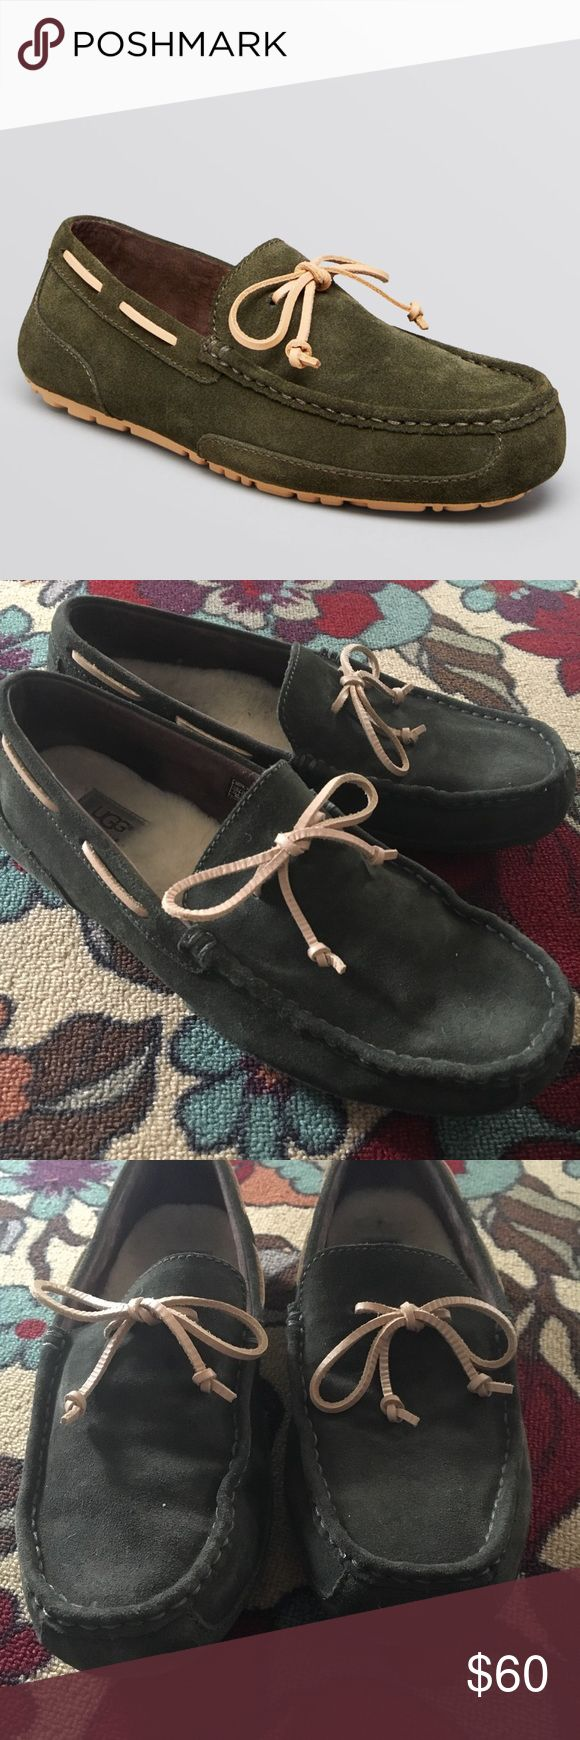 Ugg Men's Chester Loafer Slippers Barely worn men's loafers with two different insoles so they can be slippers or regular loafers. Leather inserts have never been used. Slippers have been worn only a handful of times around her house by my husband. UGG Shoes Loafers & Slip-Ons